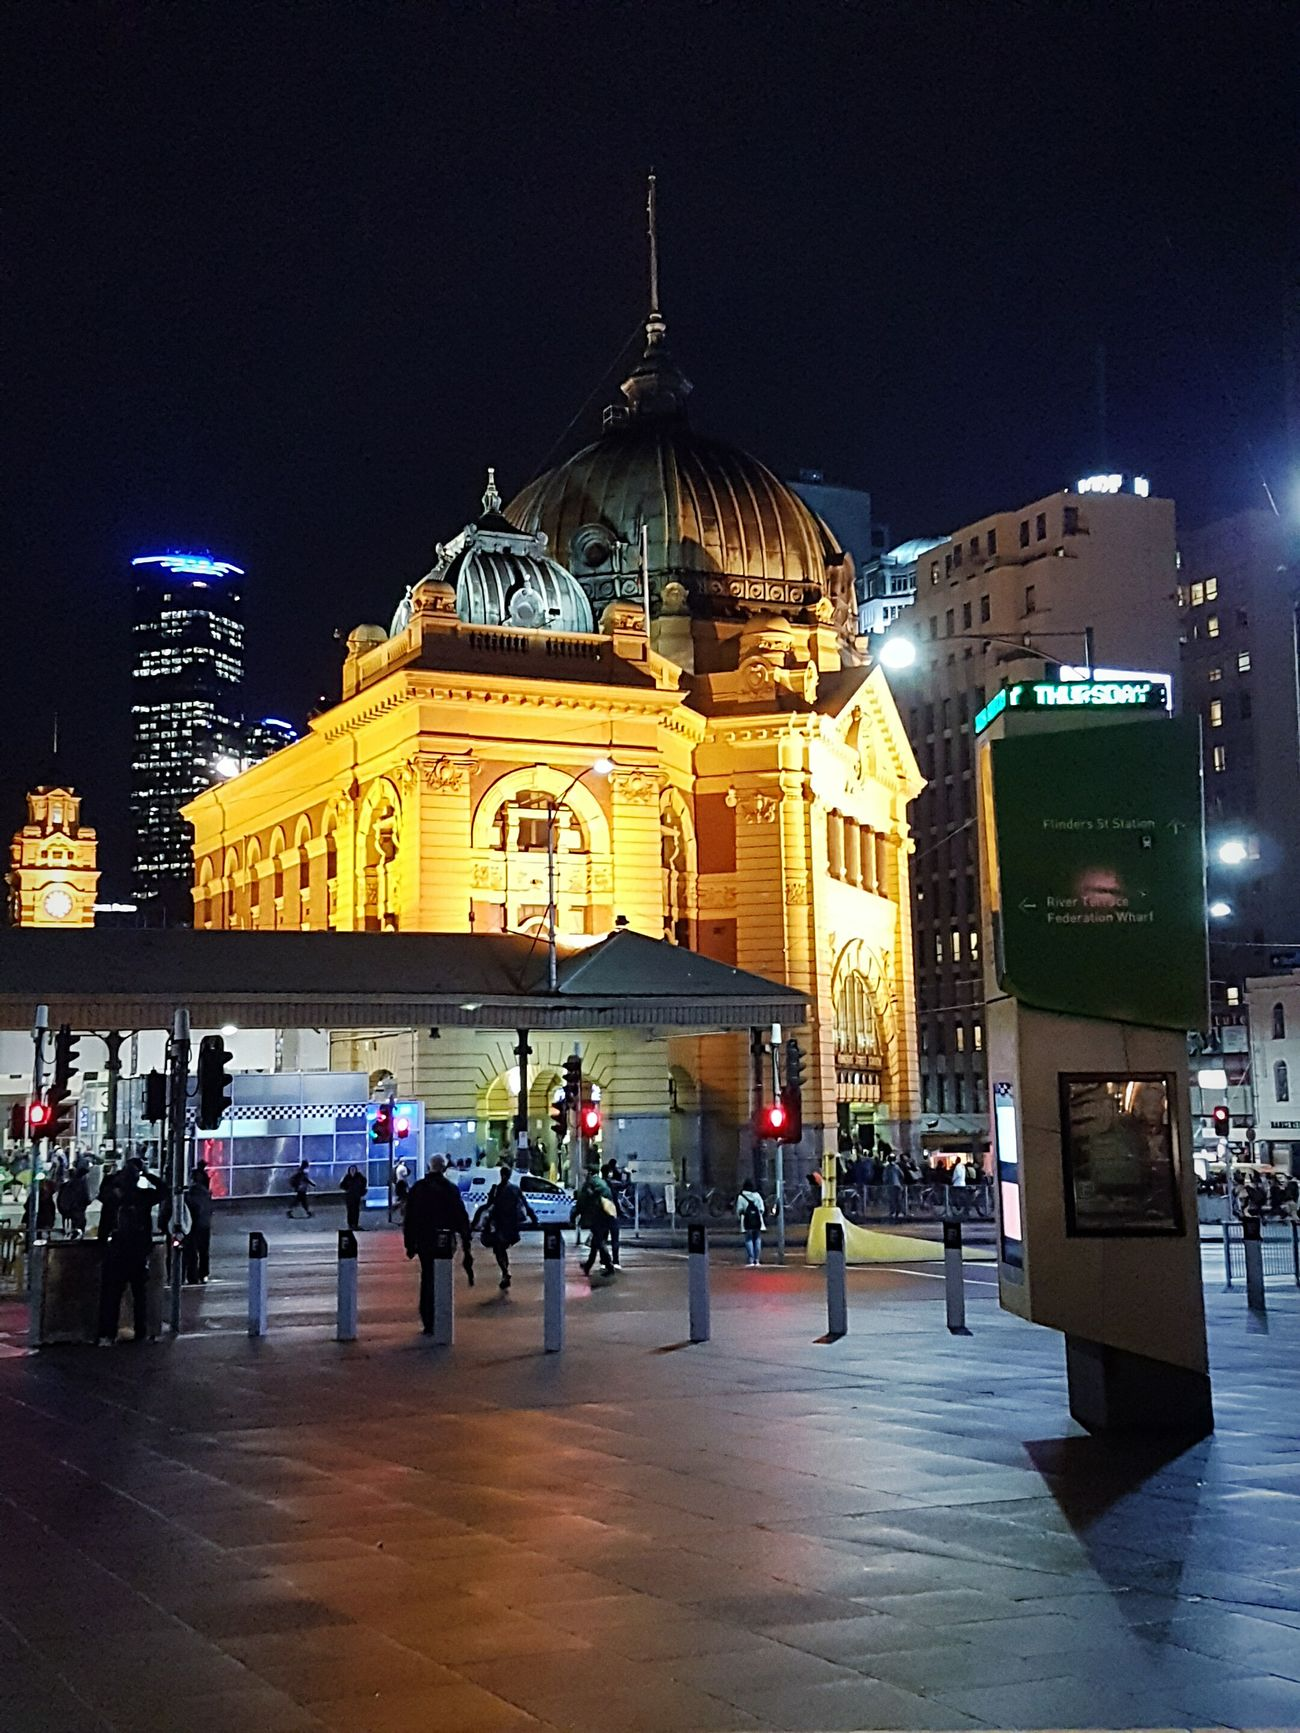 Flinder Station Night Lights Citylife Illumination